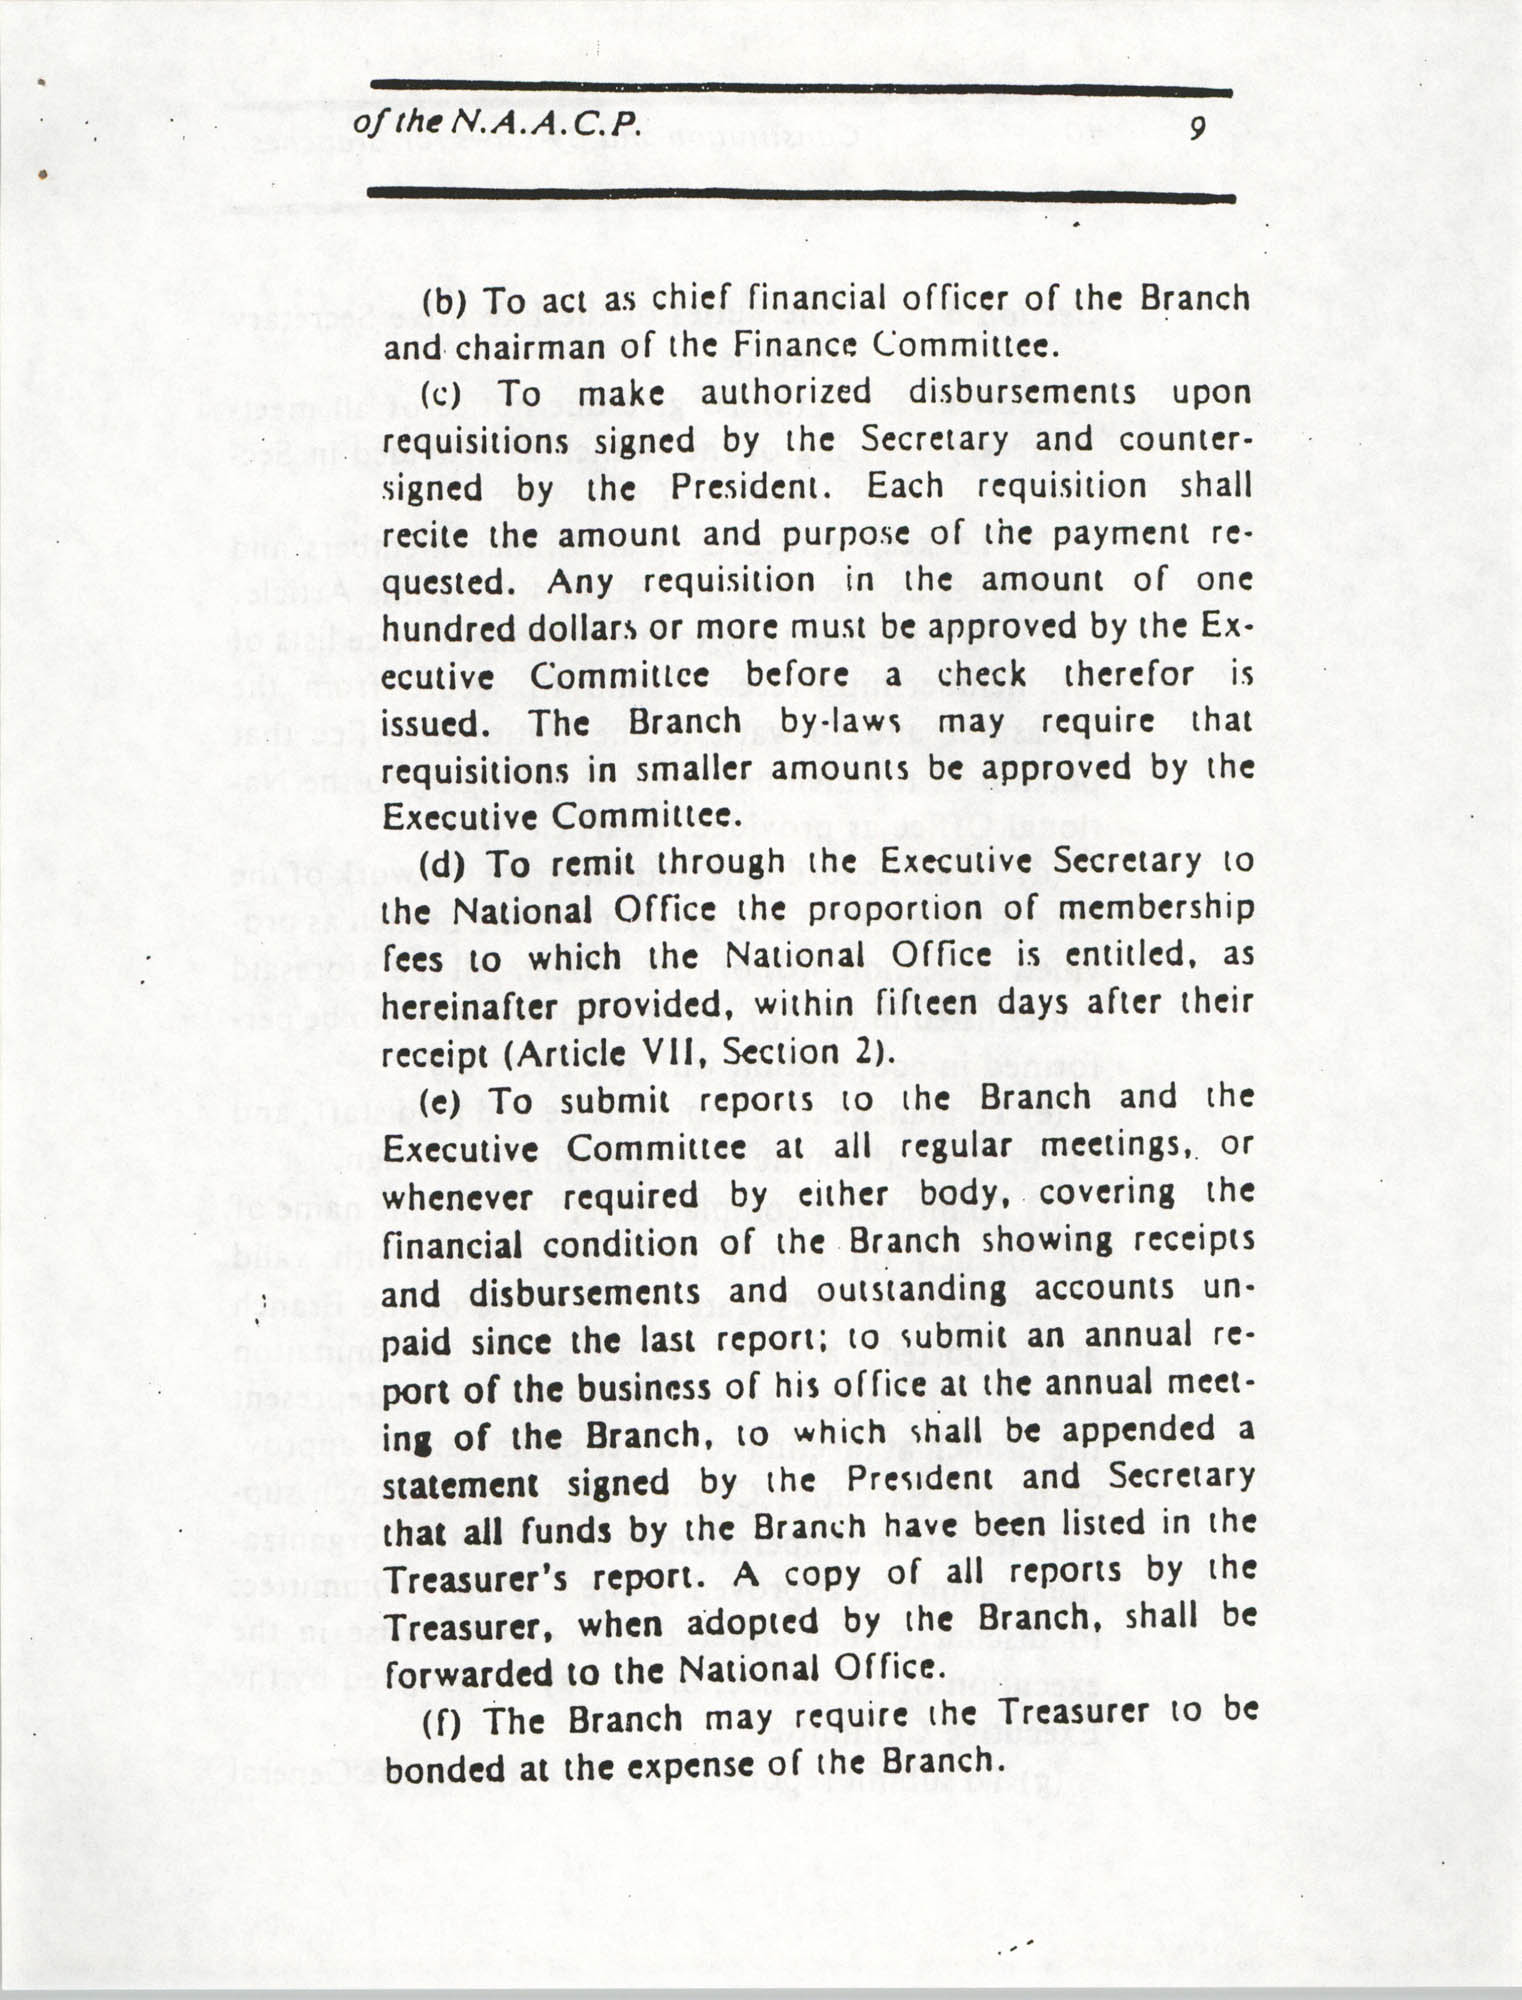 Constitution and By-Laws for Branches of the NAACP, March 1992, Page 9